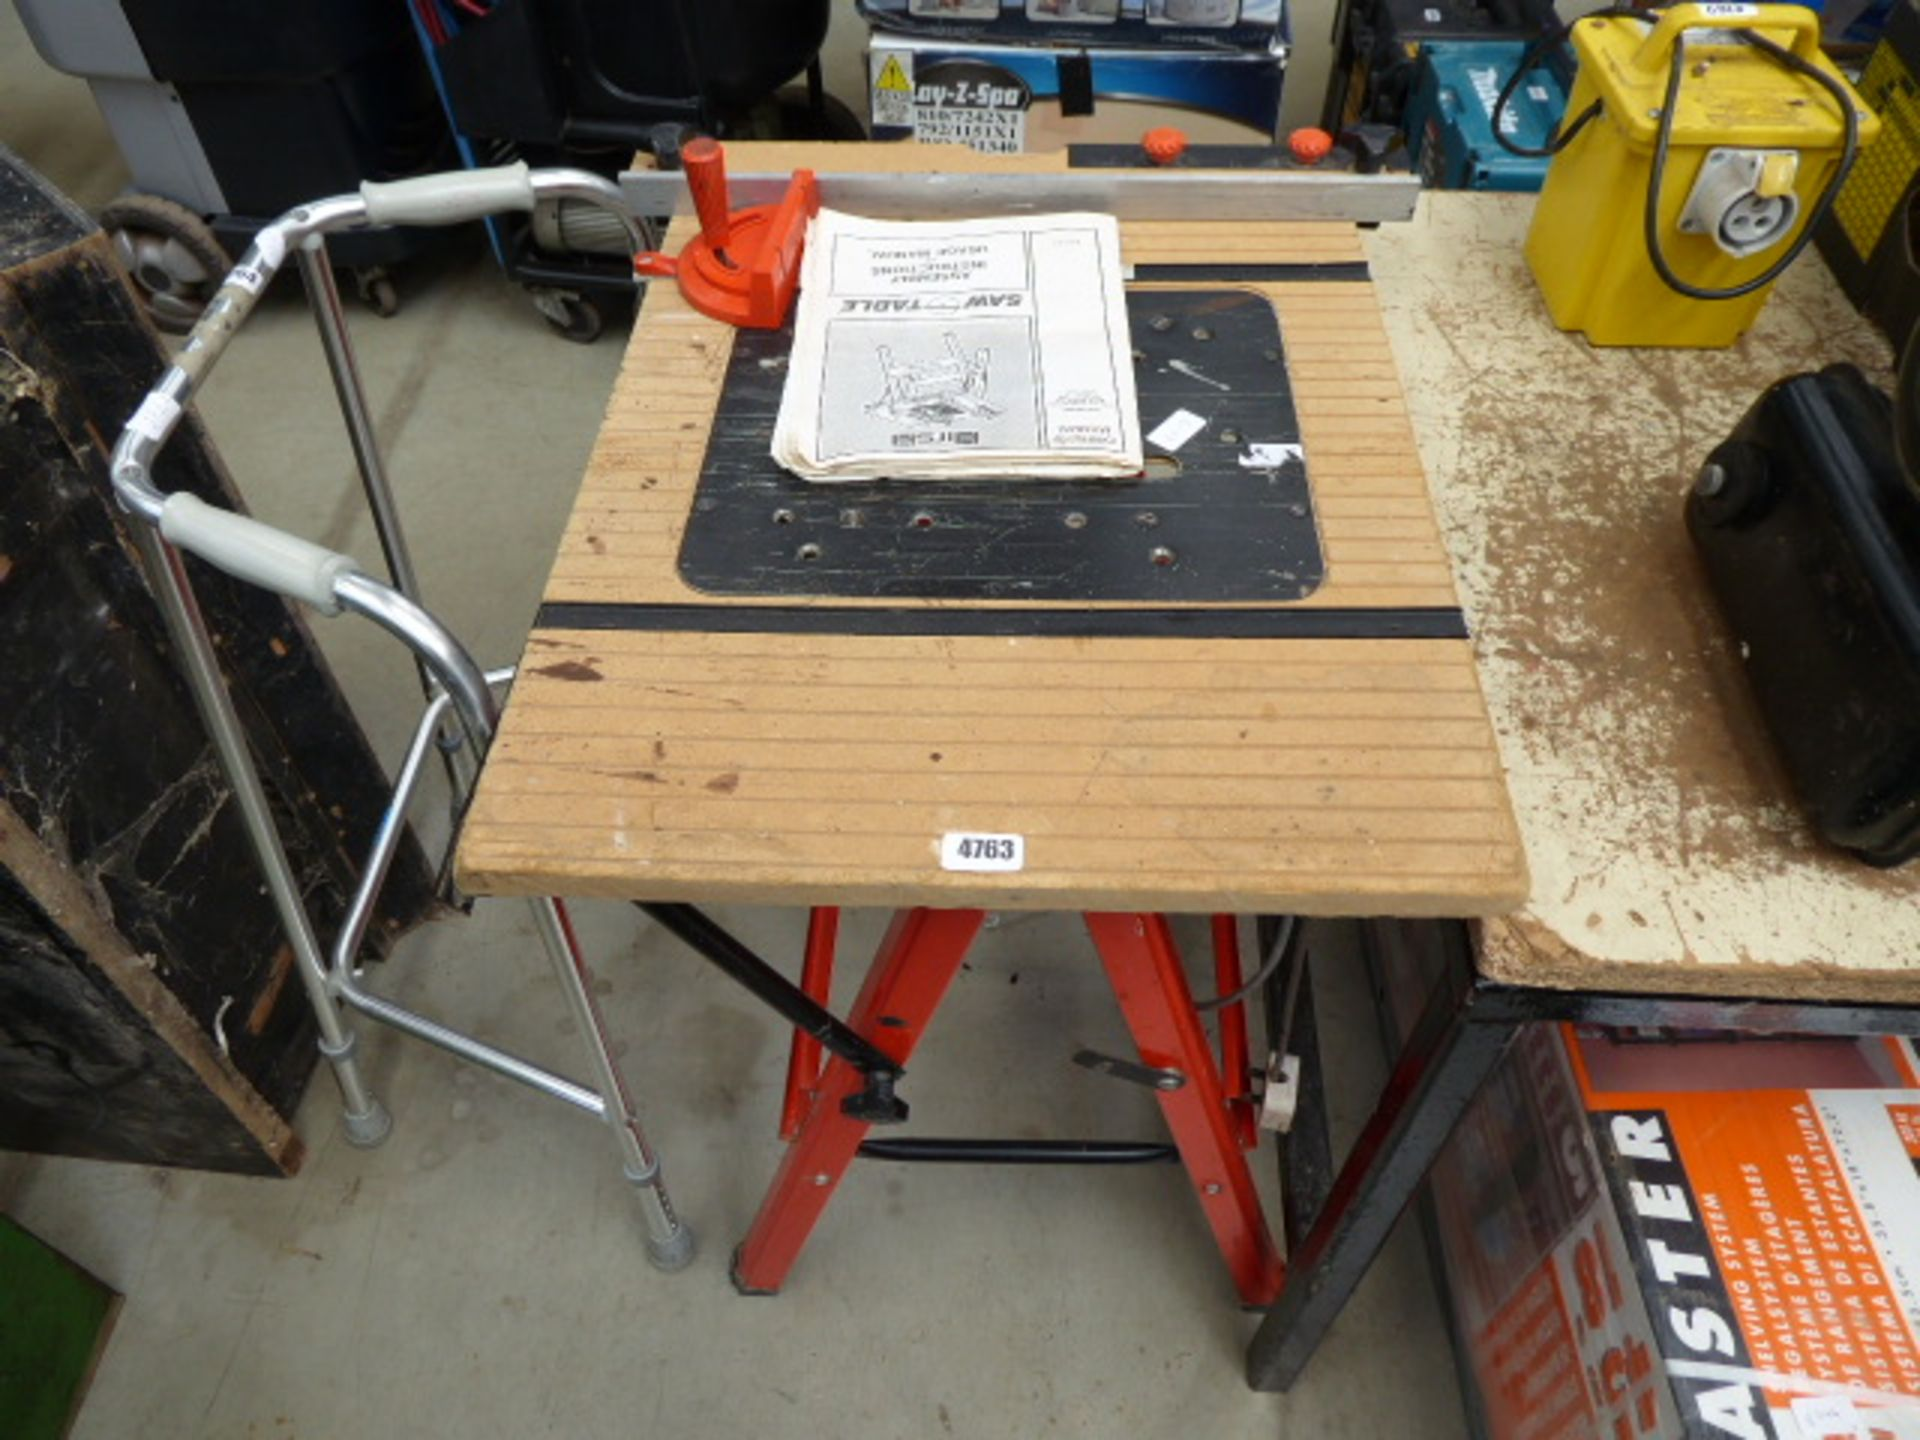 Lot 4763 - 4347 Table saw bench